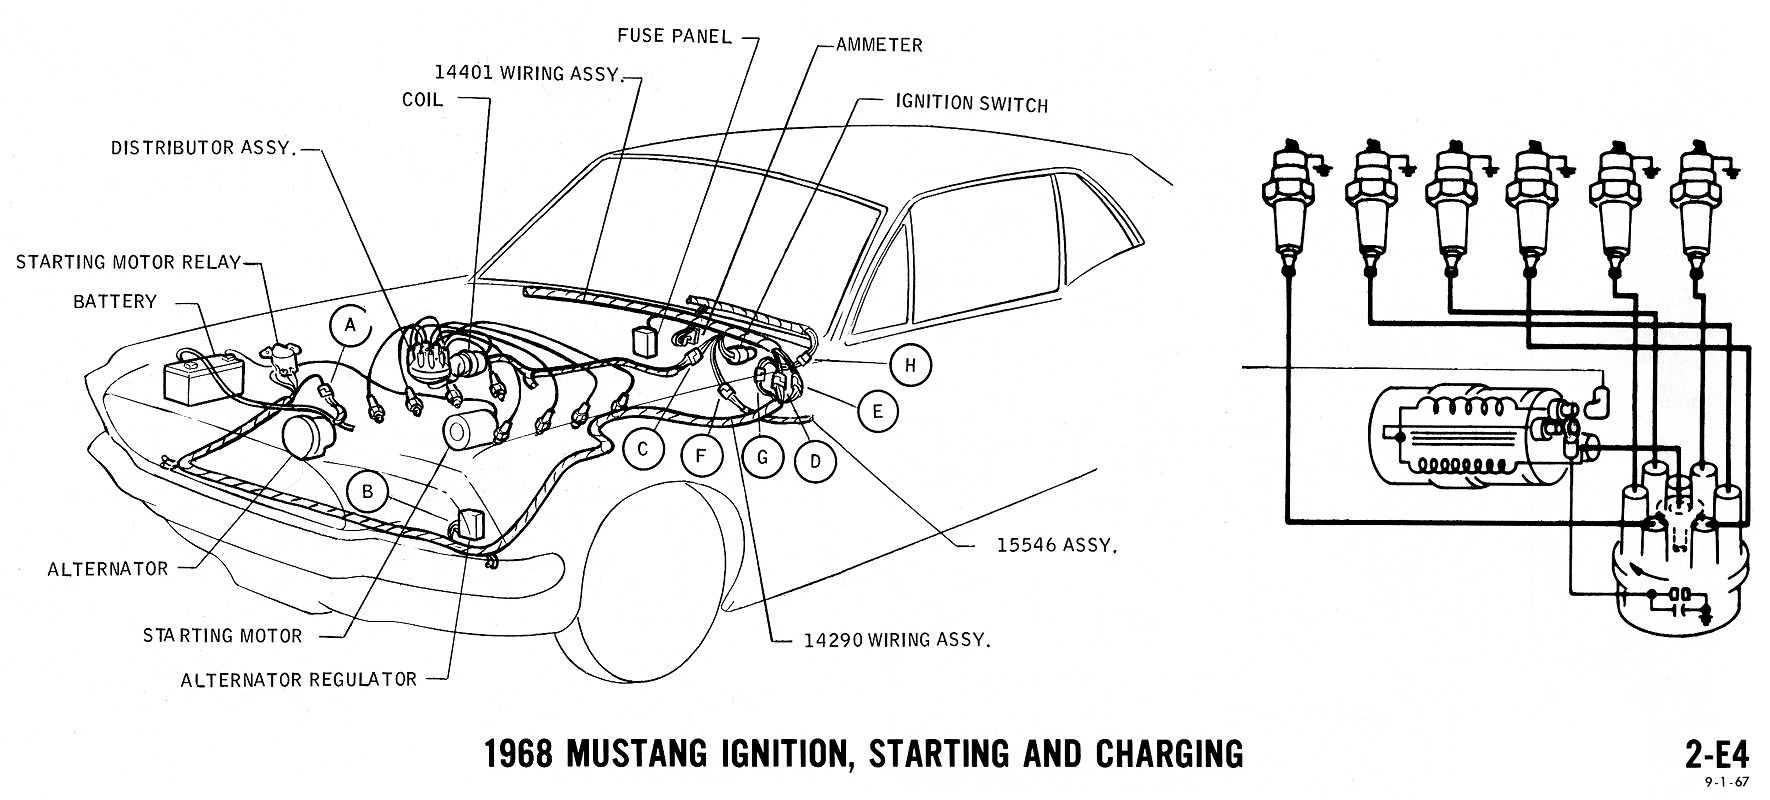 E4 1968 mustang wiring diagrams evolving software 1969 mustang ignition switch wiring diagram at webbmarketing.co